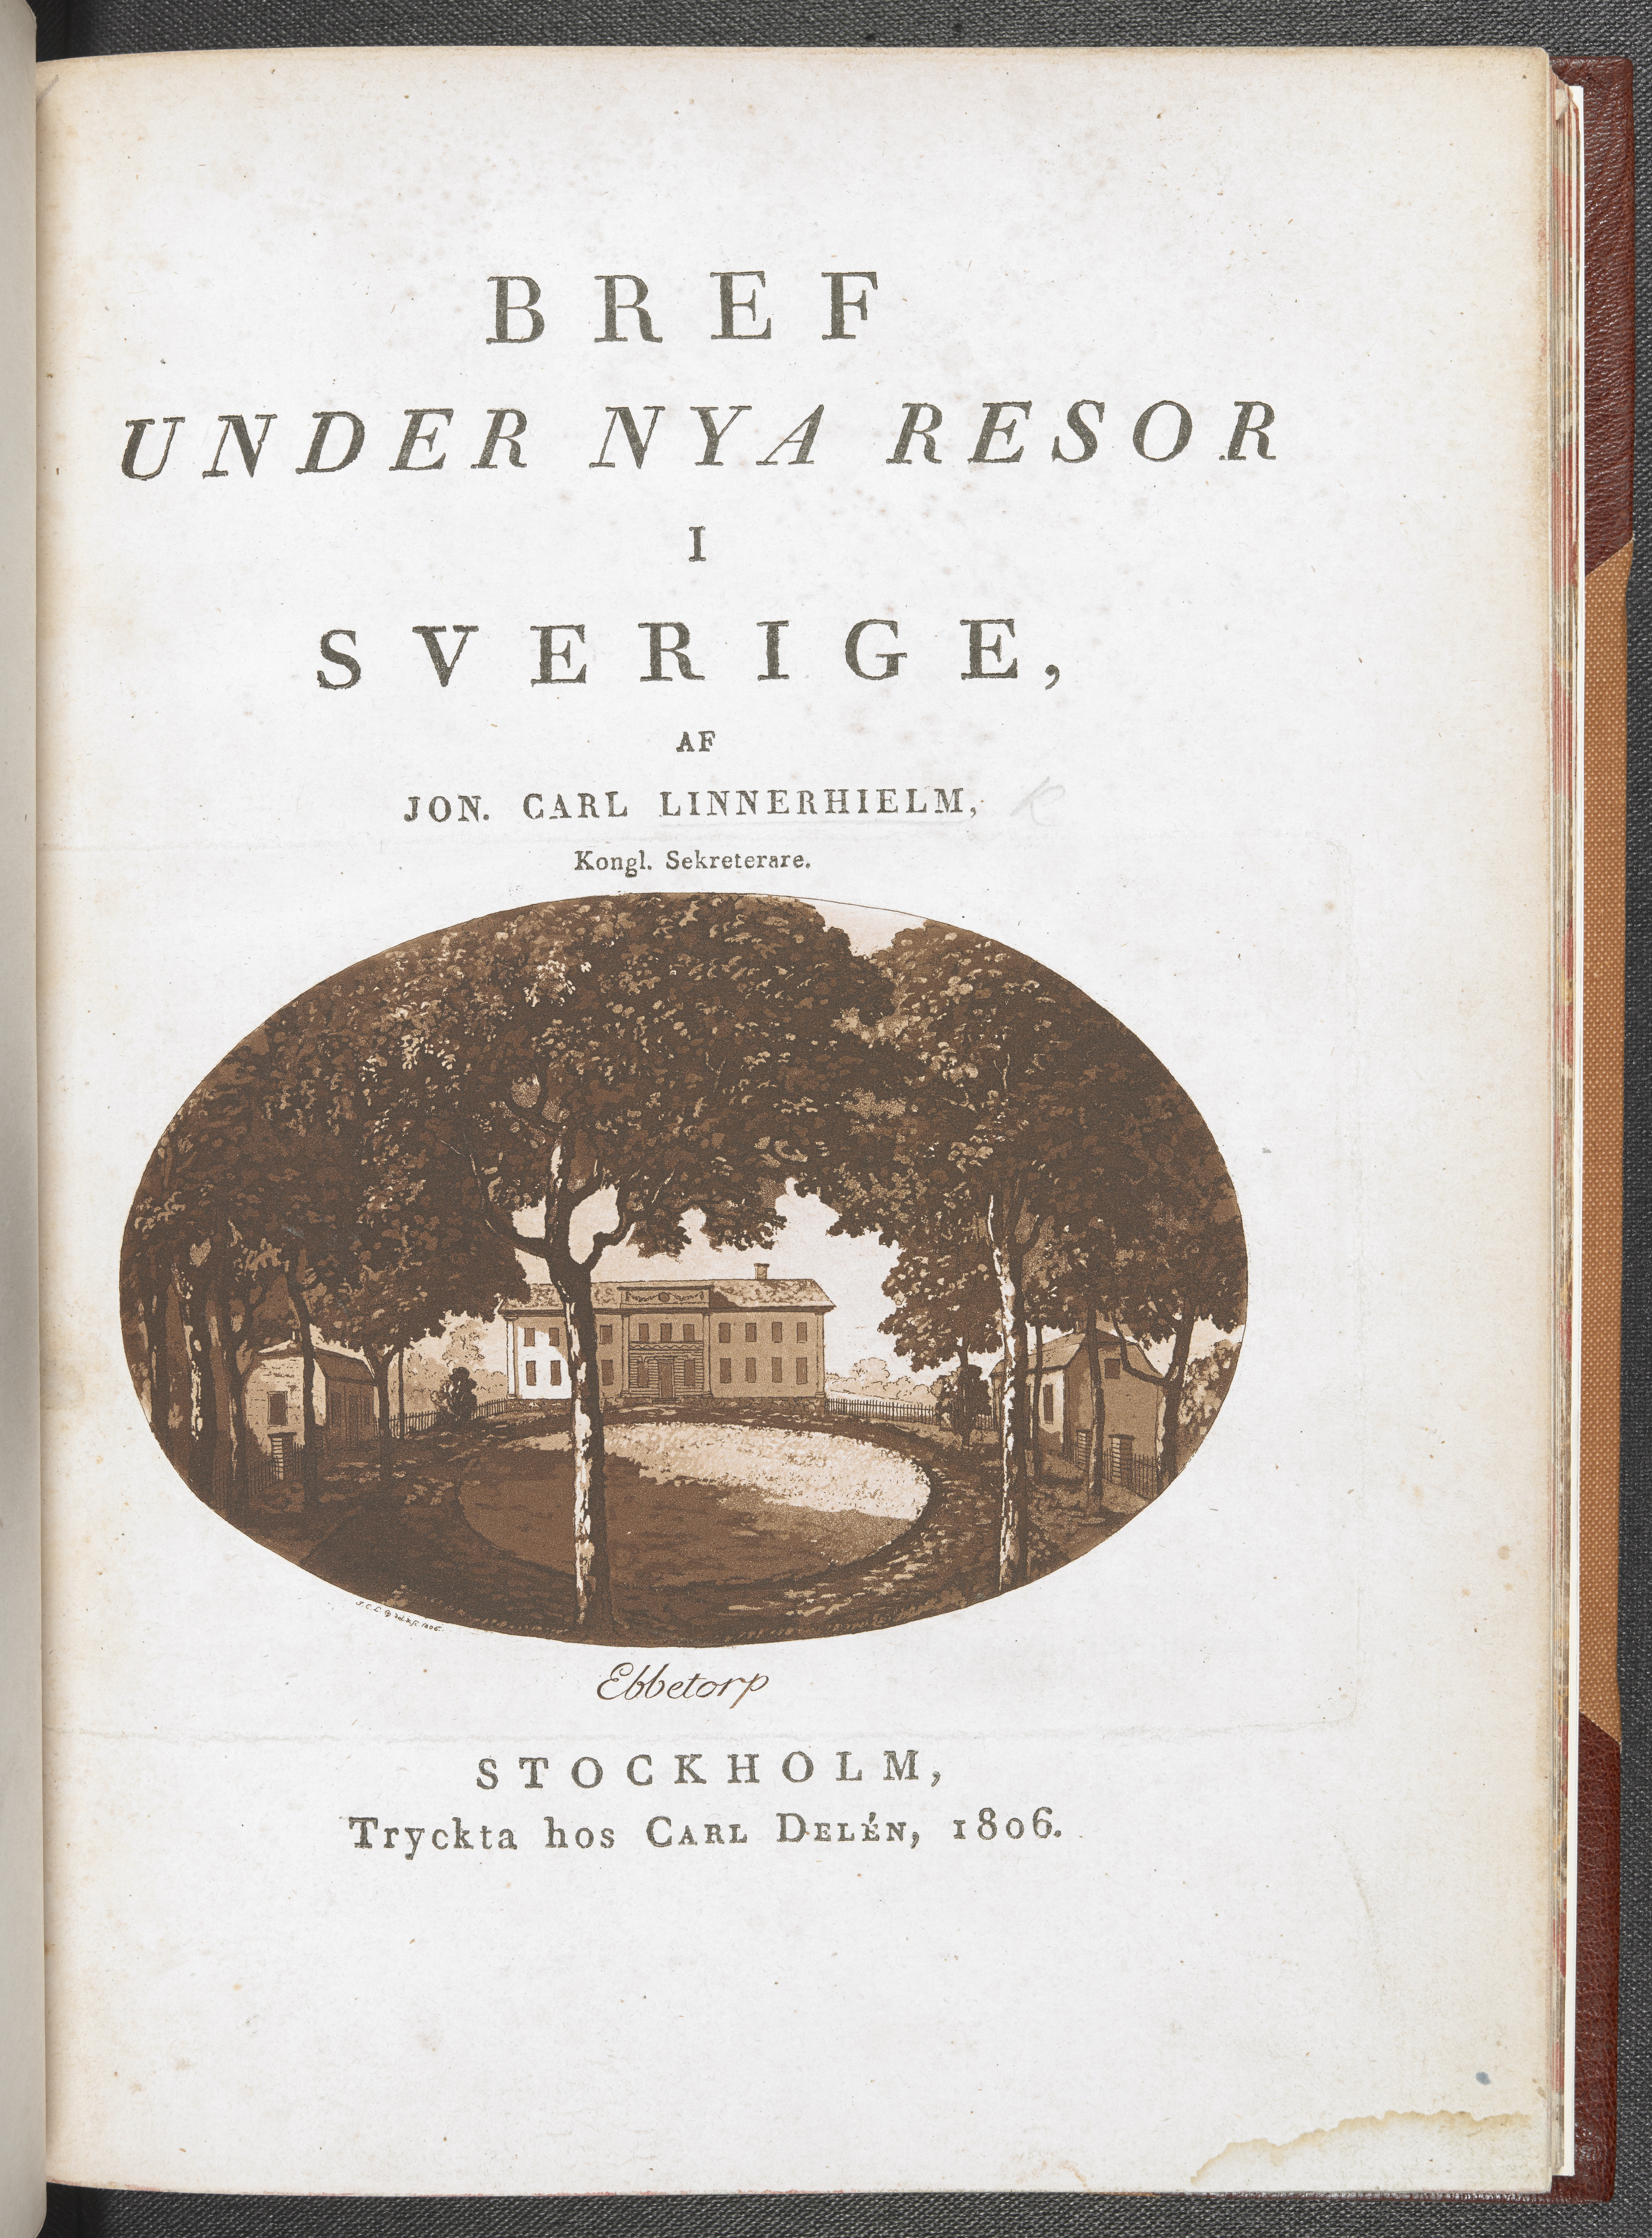 The titlepage of Jonas Carl Linnerhielm's text 'Bref under nya Resor i Sverige' (1806).